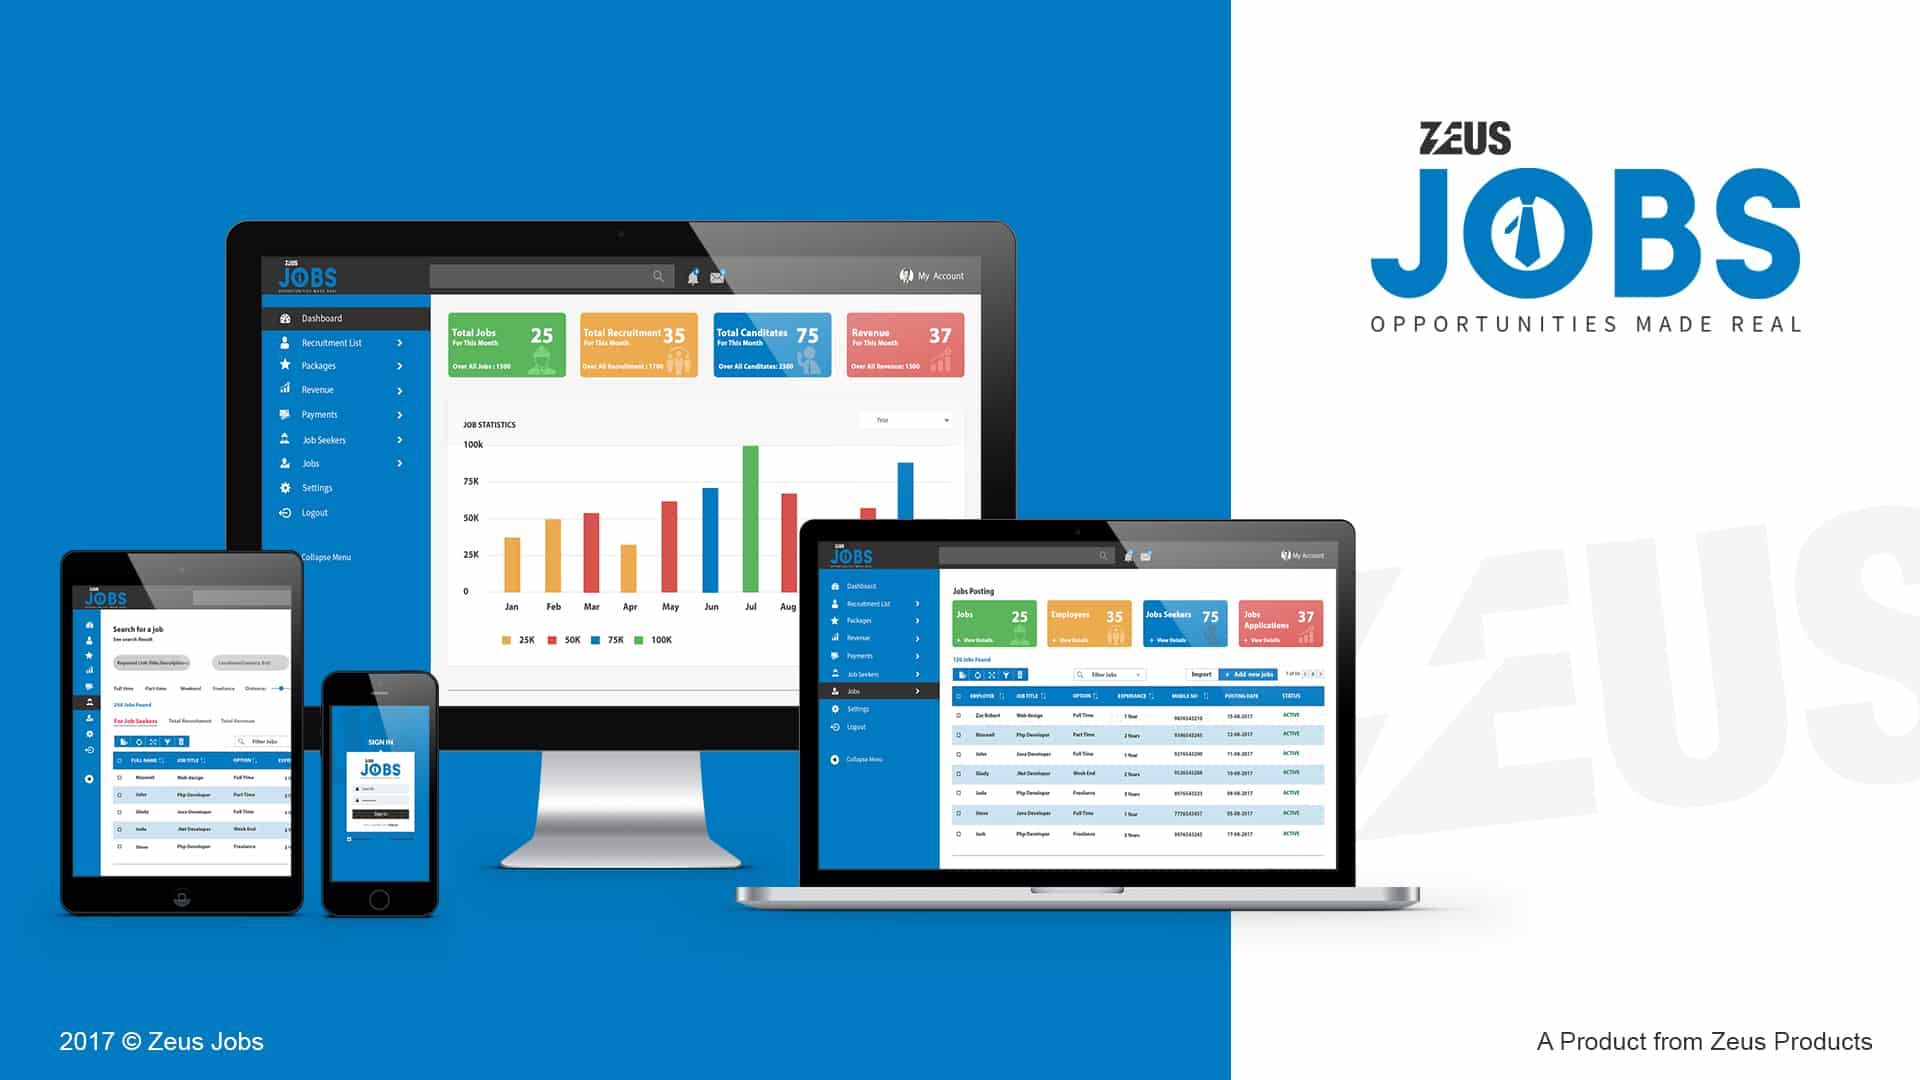 Zeus CRM Job Portal Applications